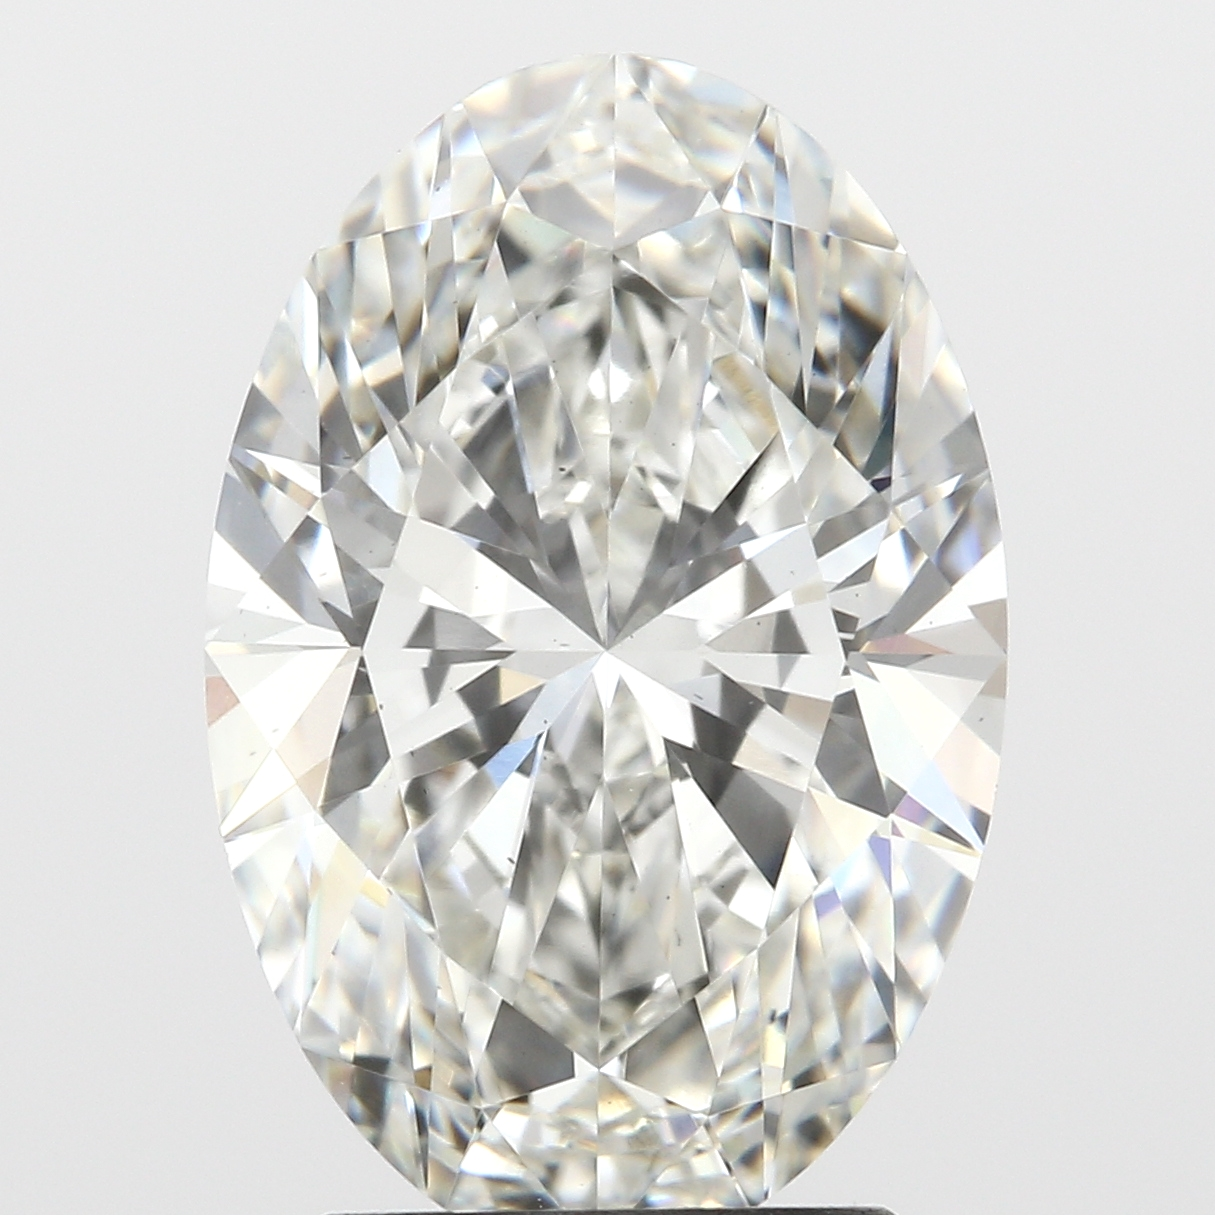 Oval Cut 2.39 Carat G Color Vs2 Clarity Sku Lg61041331